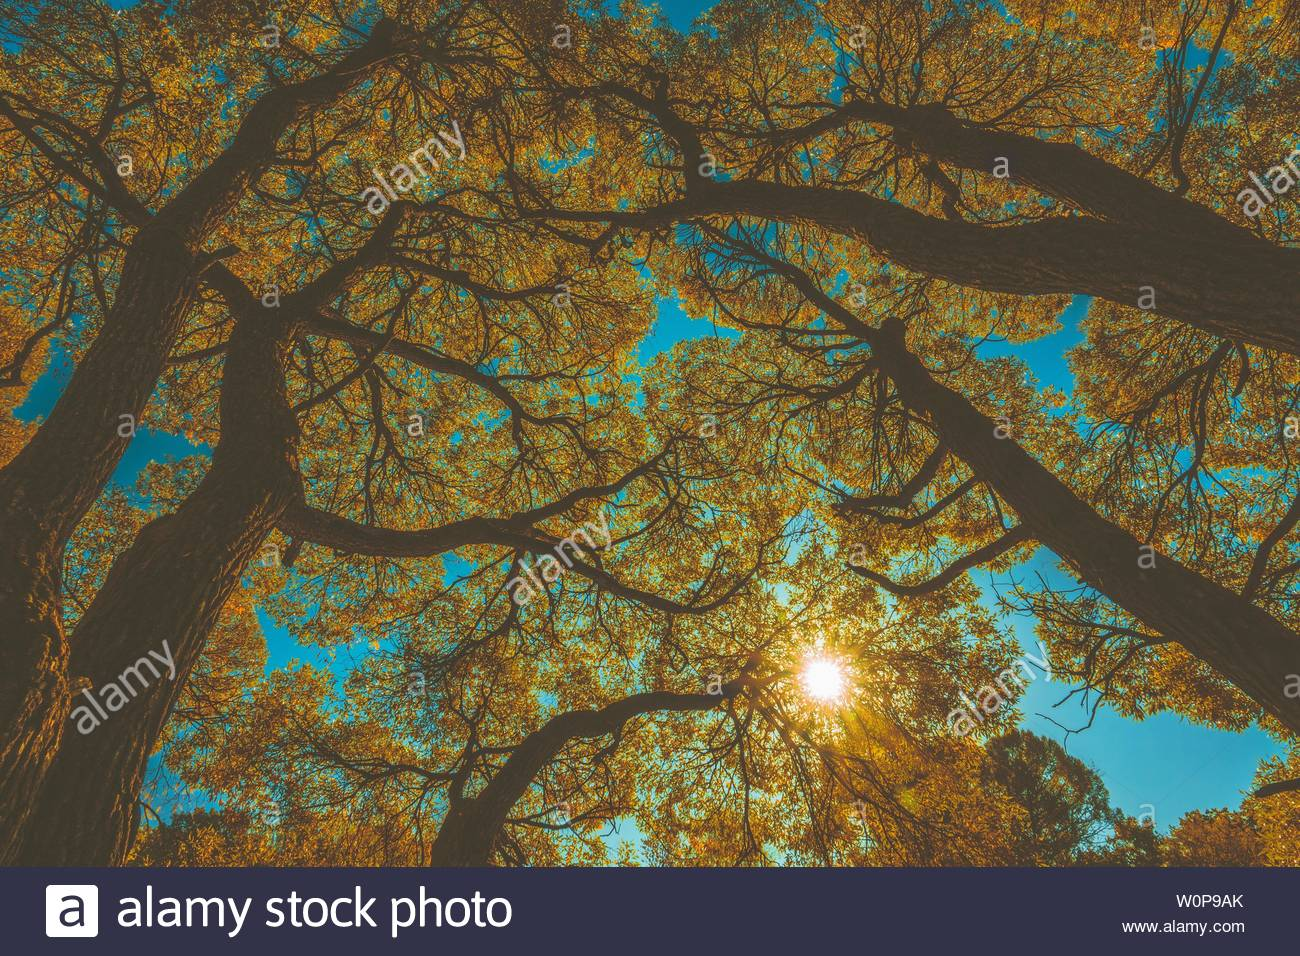 trees with yellow leaves - Stock Image